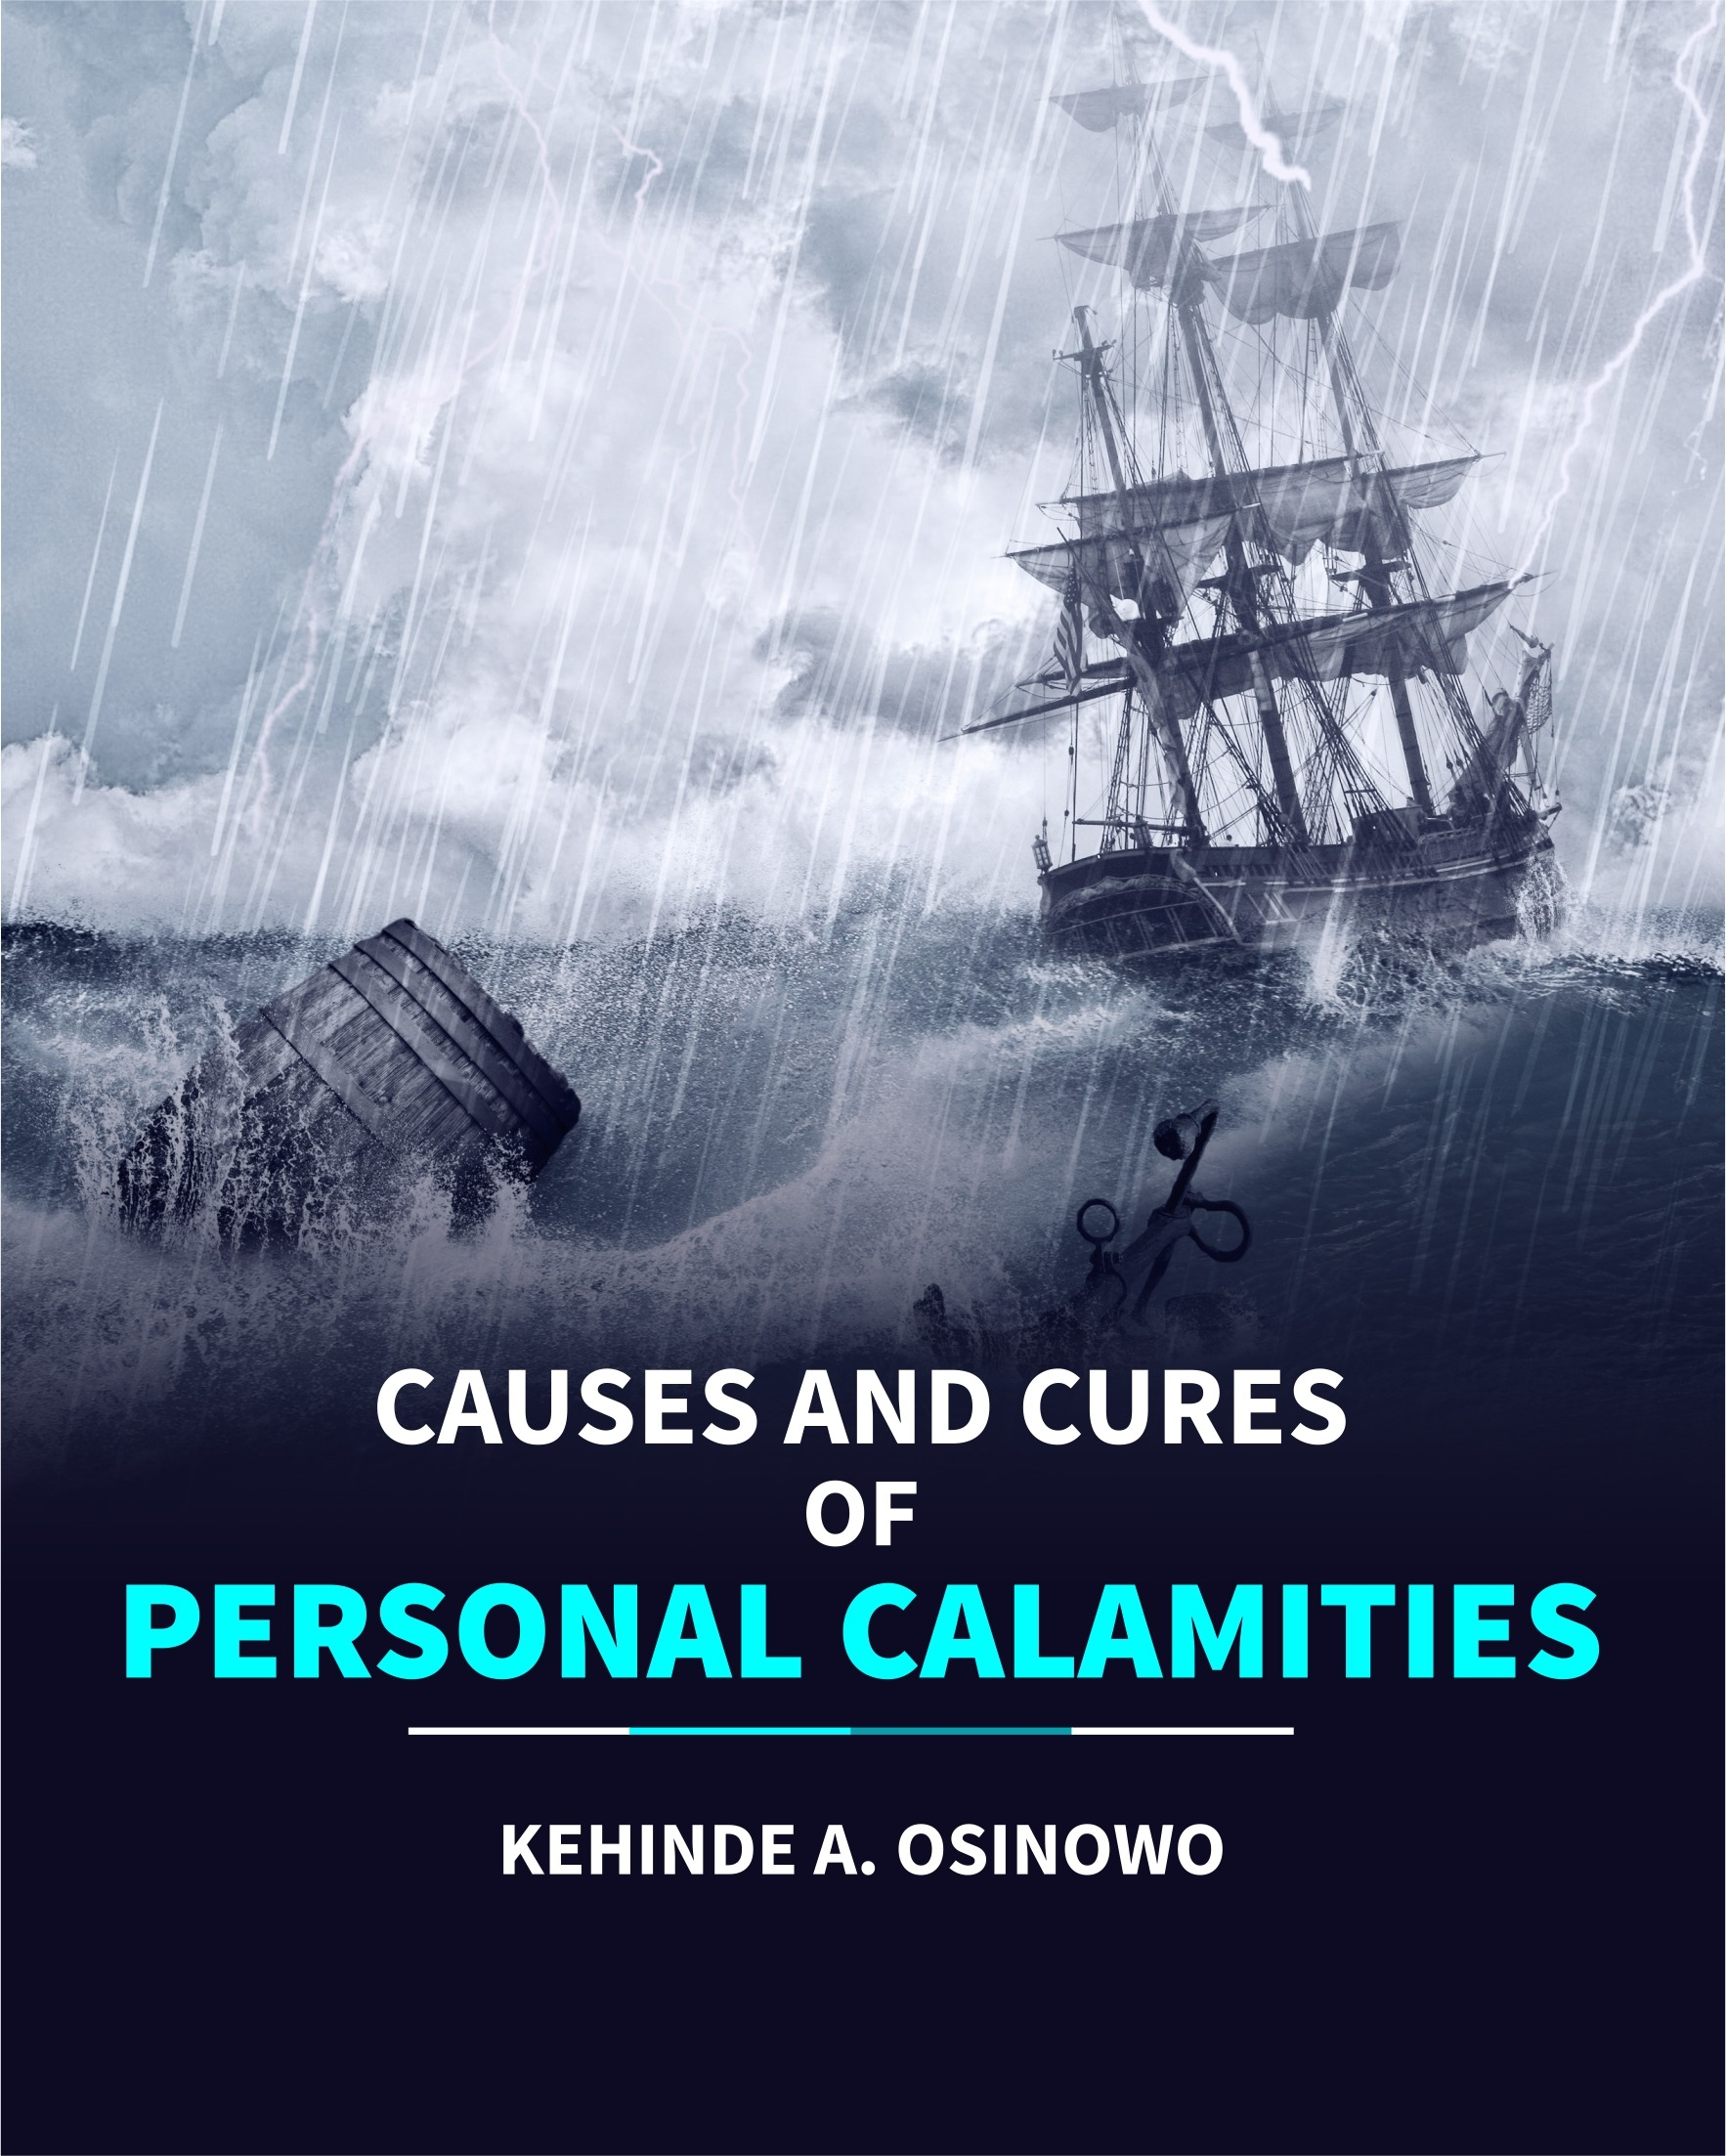 Causes and Cures of Personal Calamity